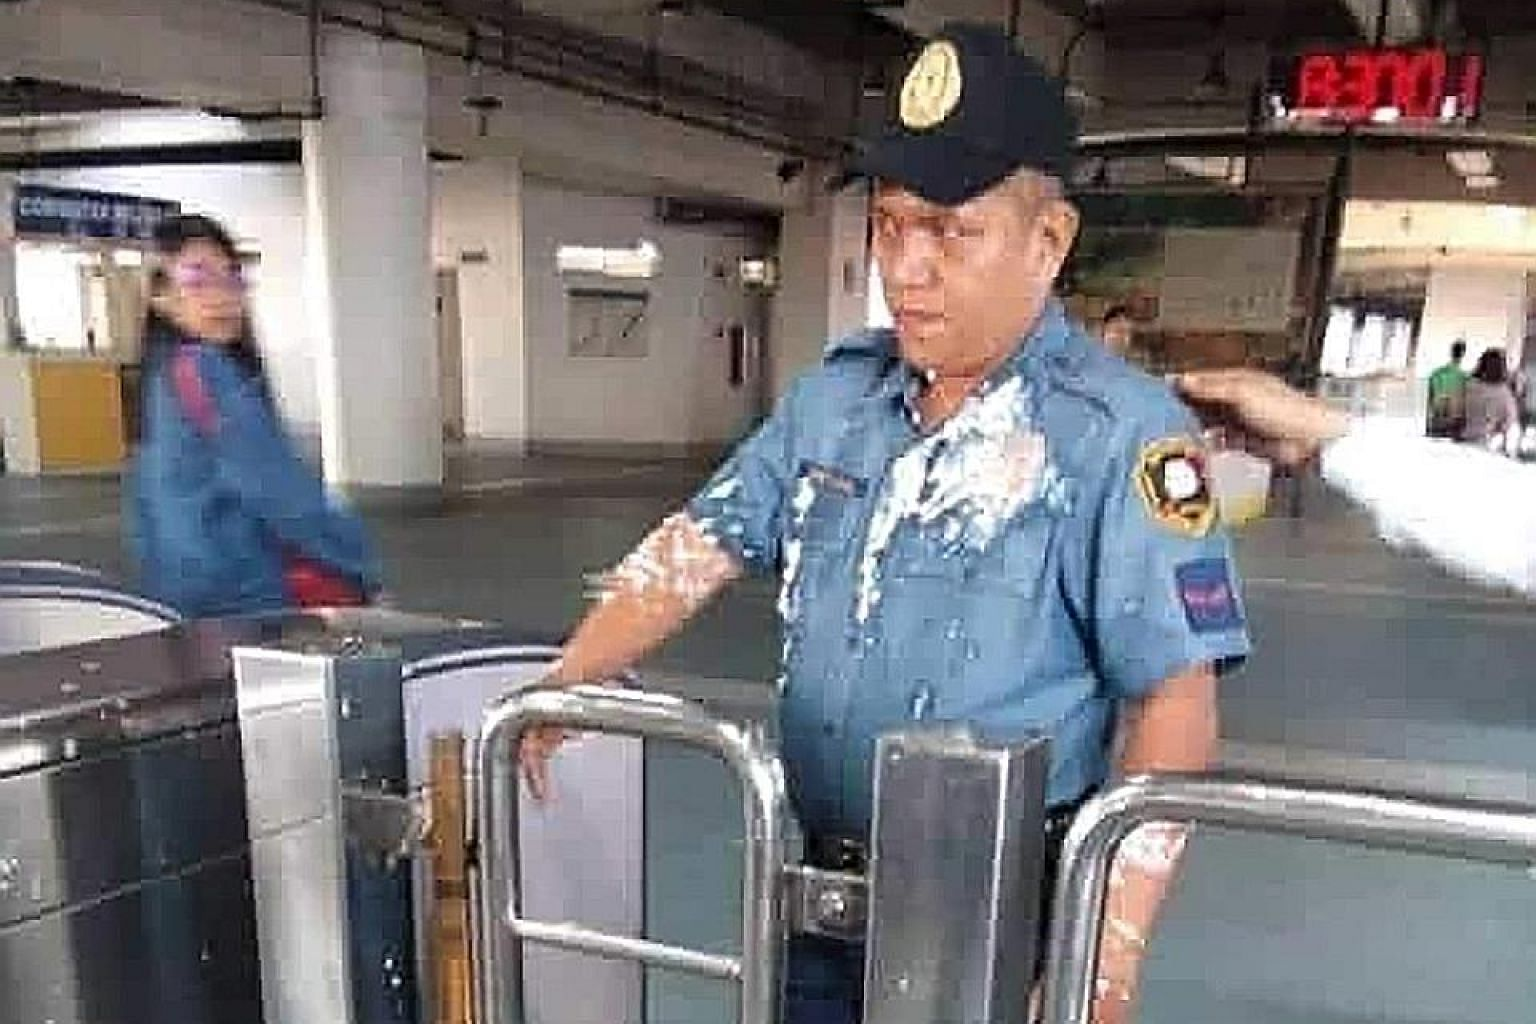 In the video clip, Zhang Jiale (above) came across as haughtily defiant as she glared across the turnstile at Officer William Cristobal with bean curd streaming down his shirt front and arm.